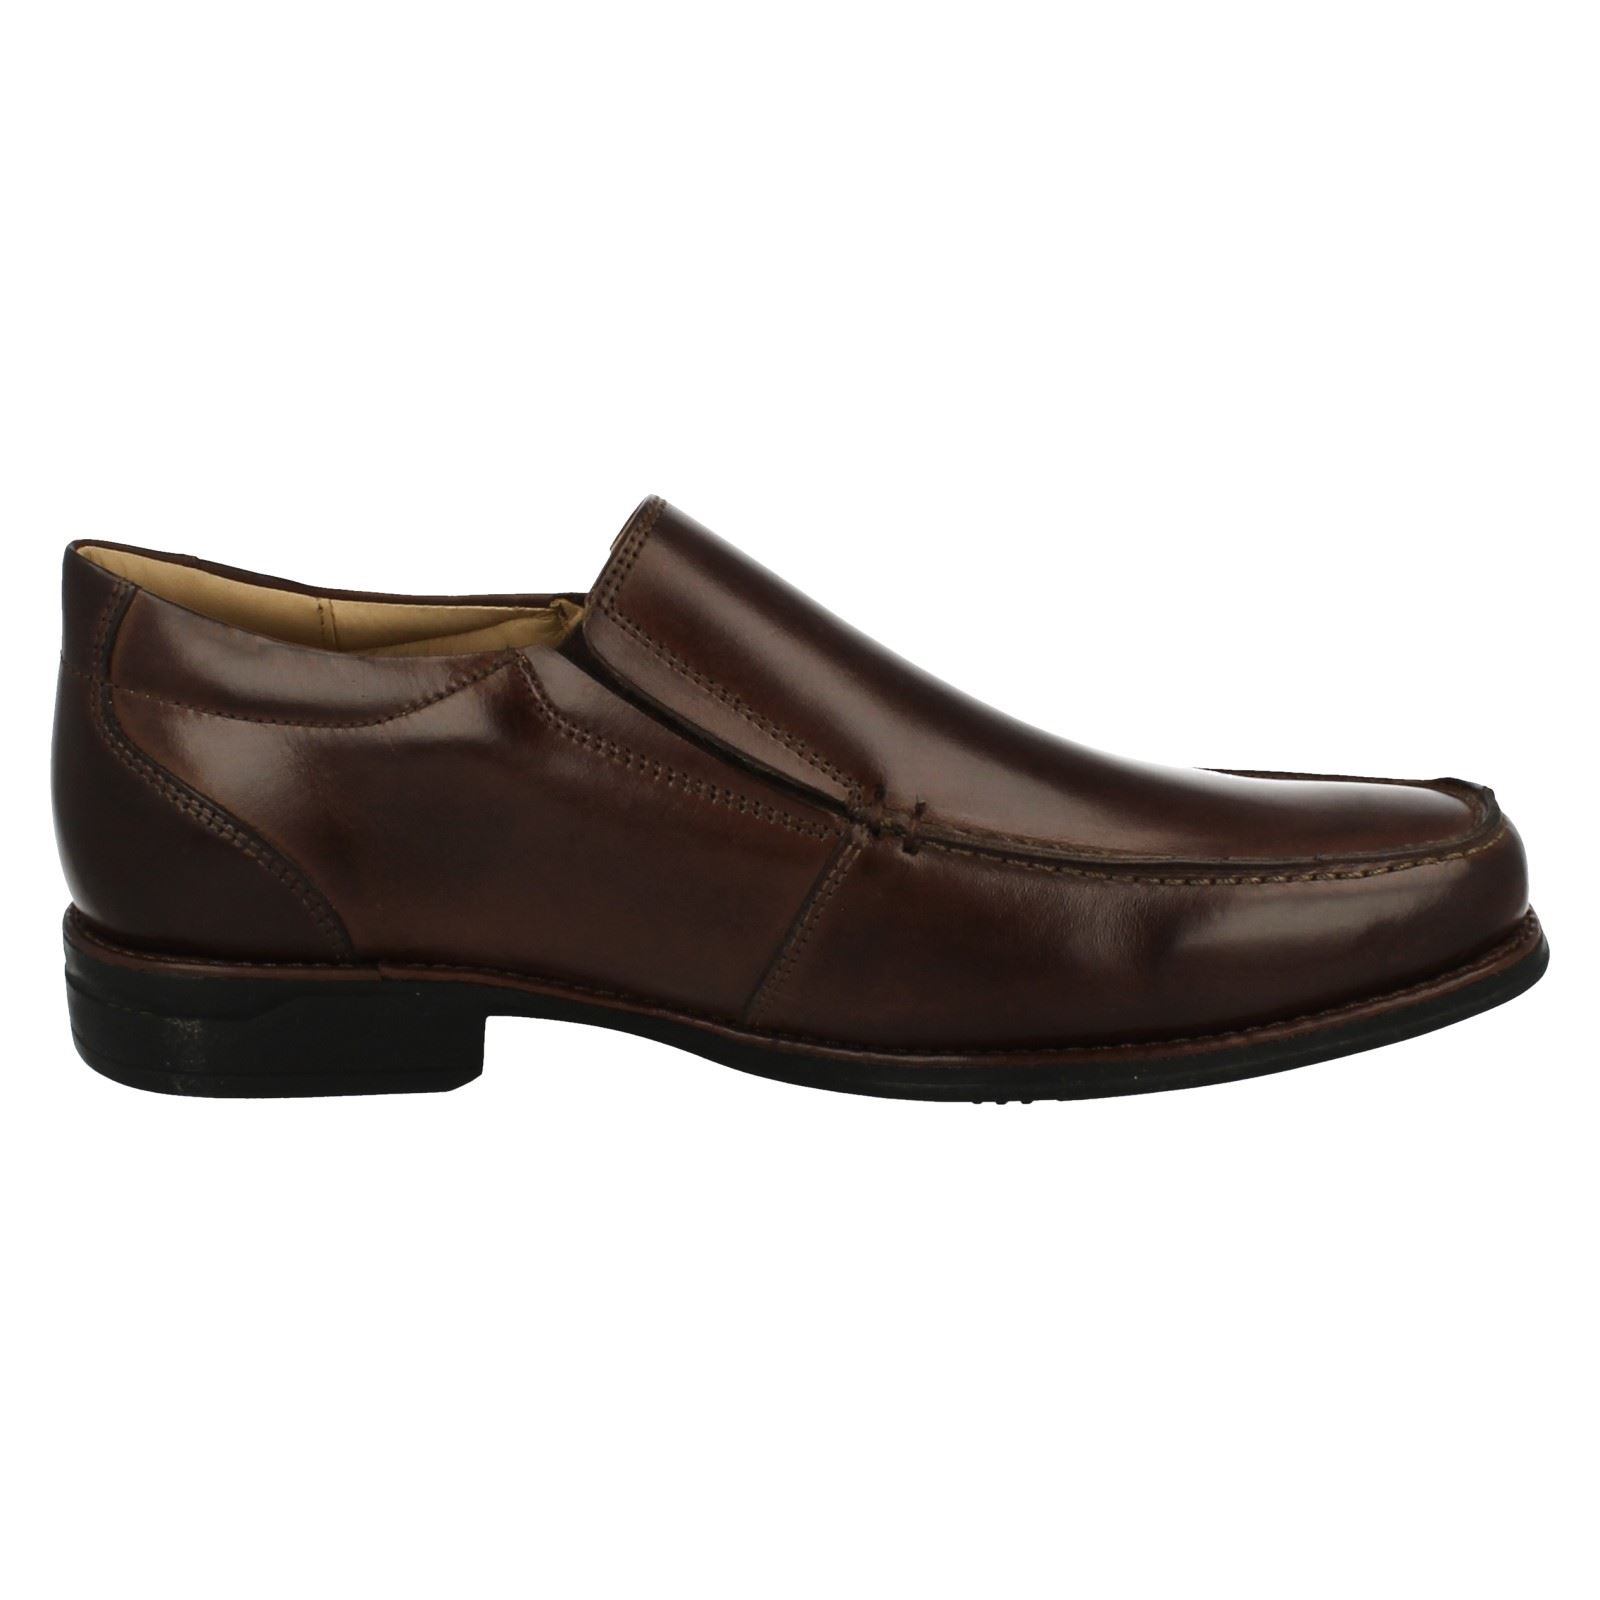 Shop online for Men's Slip-On Loafers, Driving Shoes & Moccasins at sisk-profi.ga Find boat shoes & mules. Free Shipping. Free Returns. All the time.